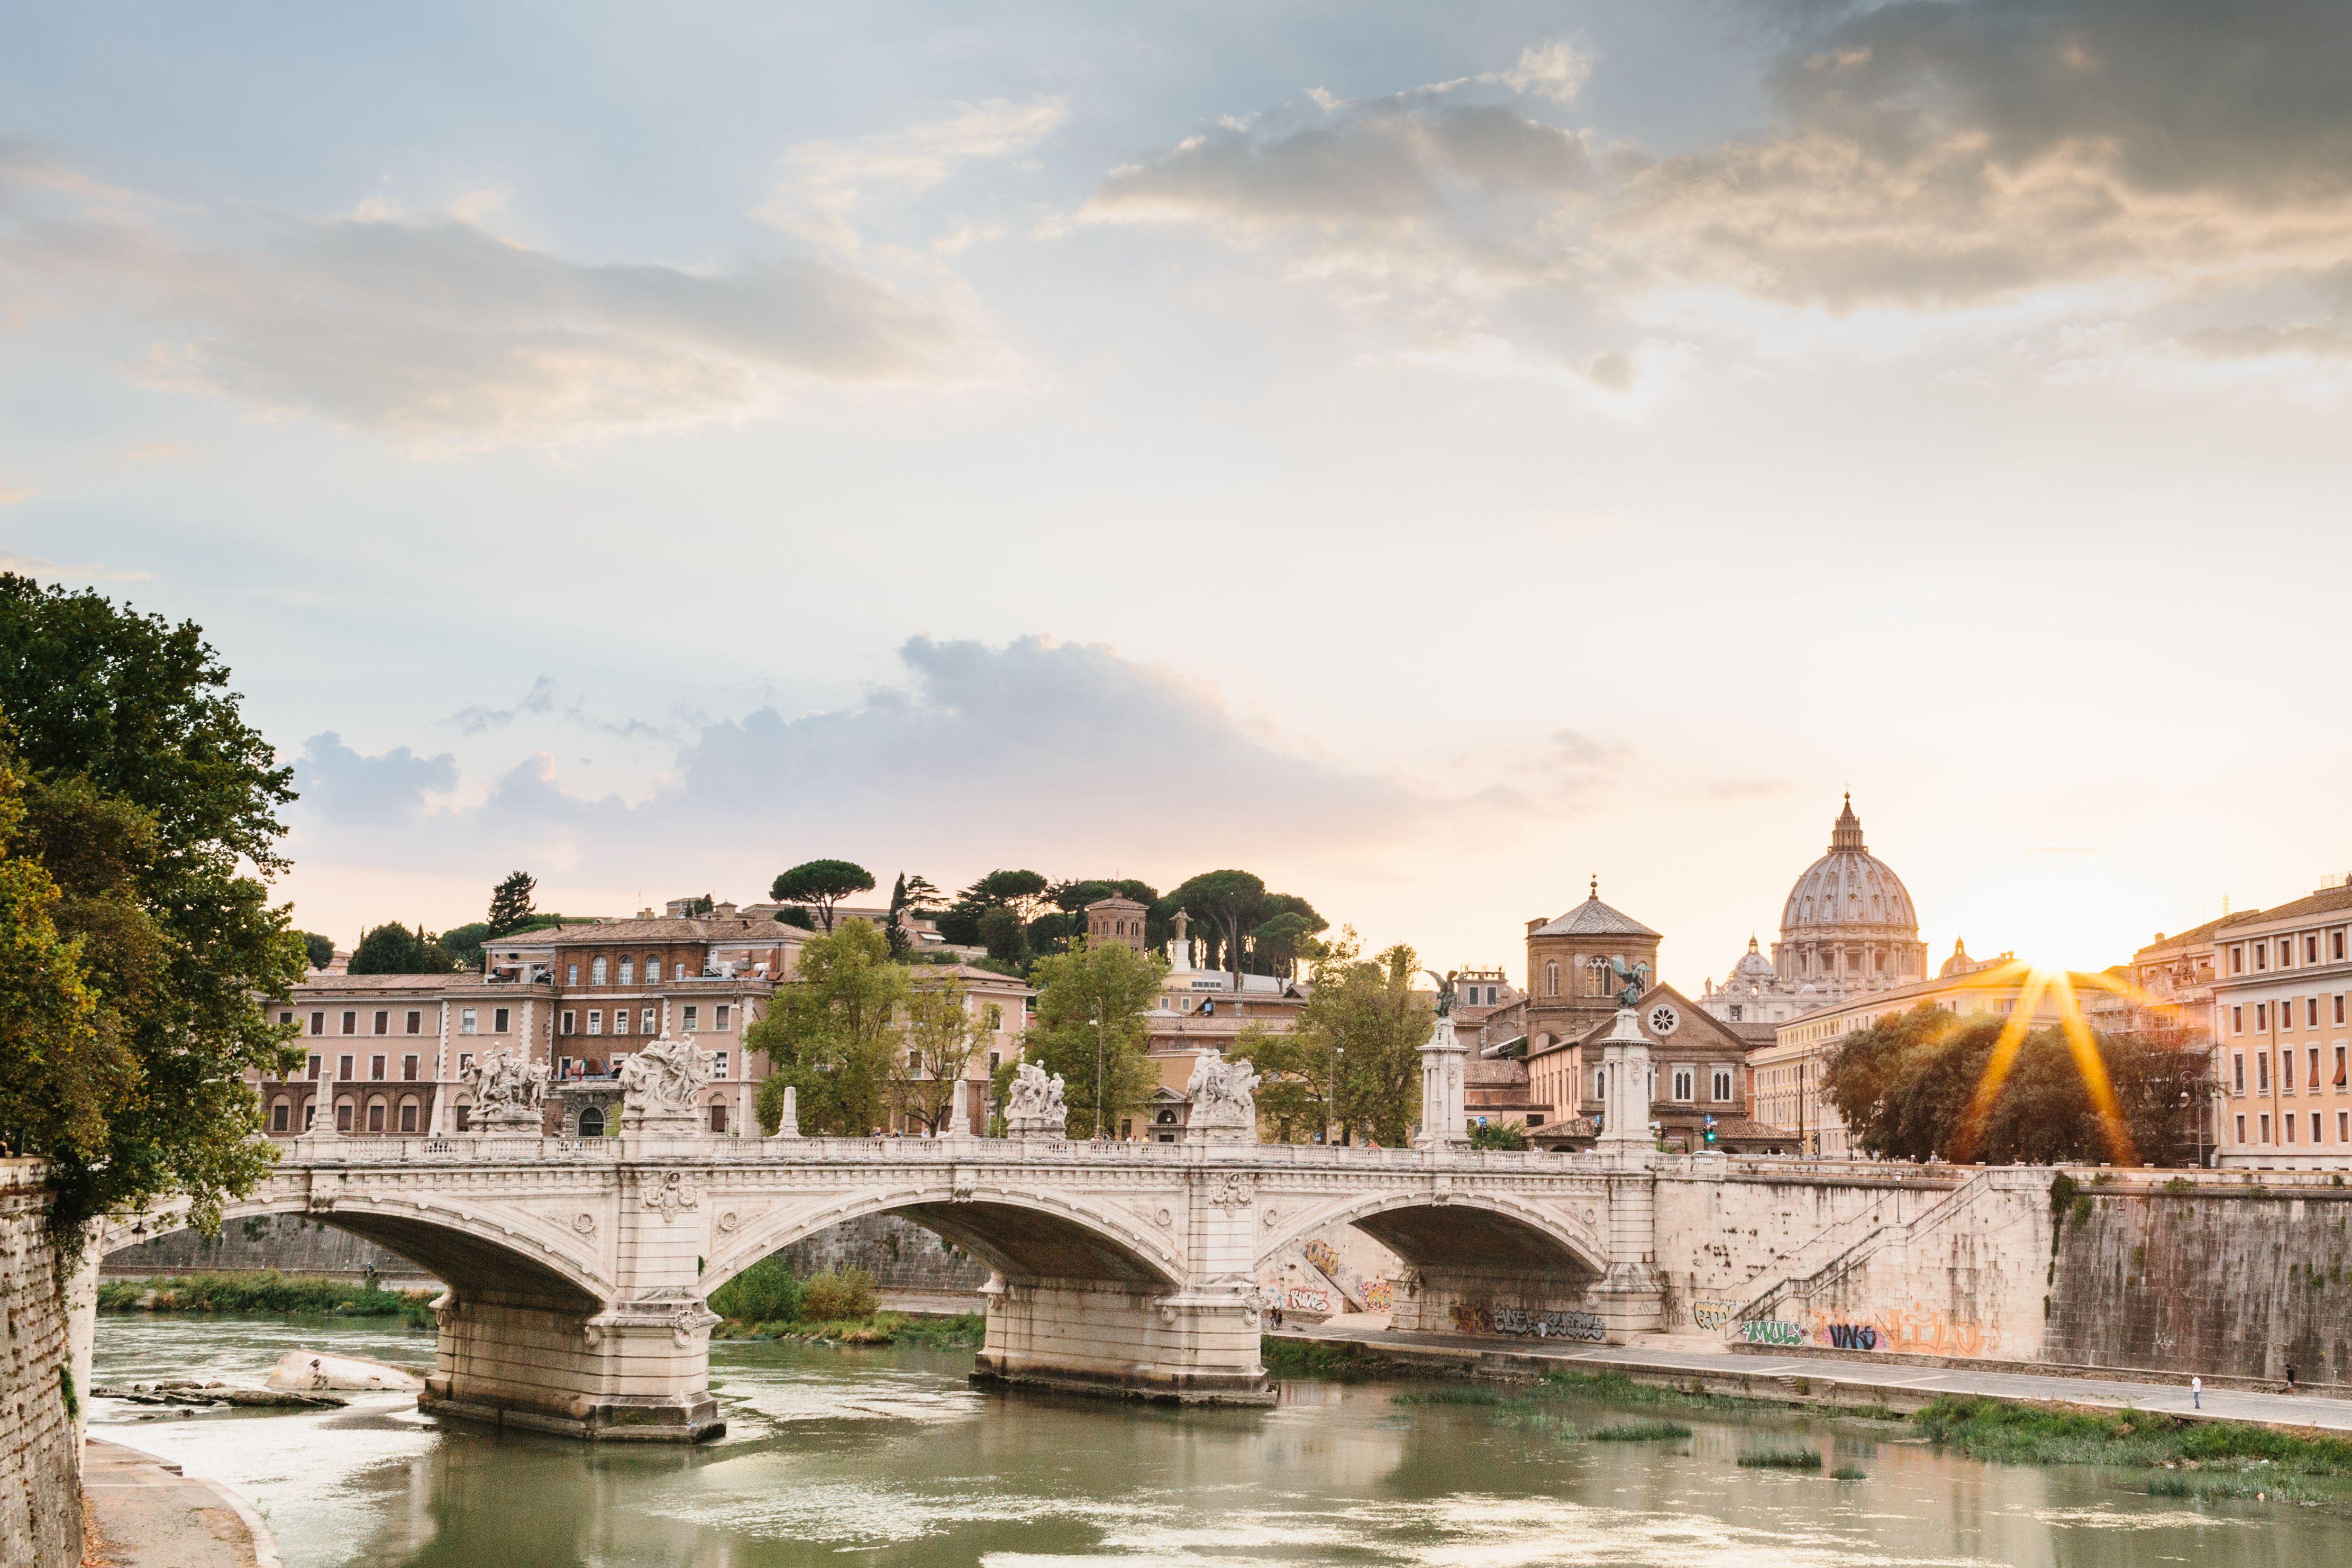 Sunset over the River Tiber with a view of Vatican City